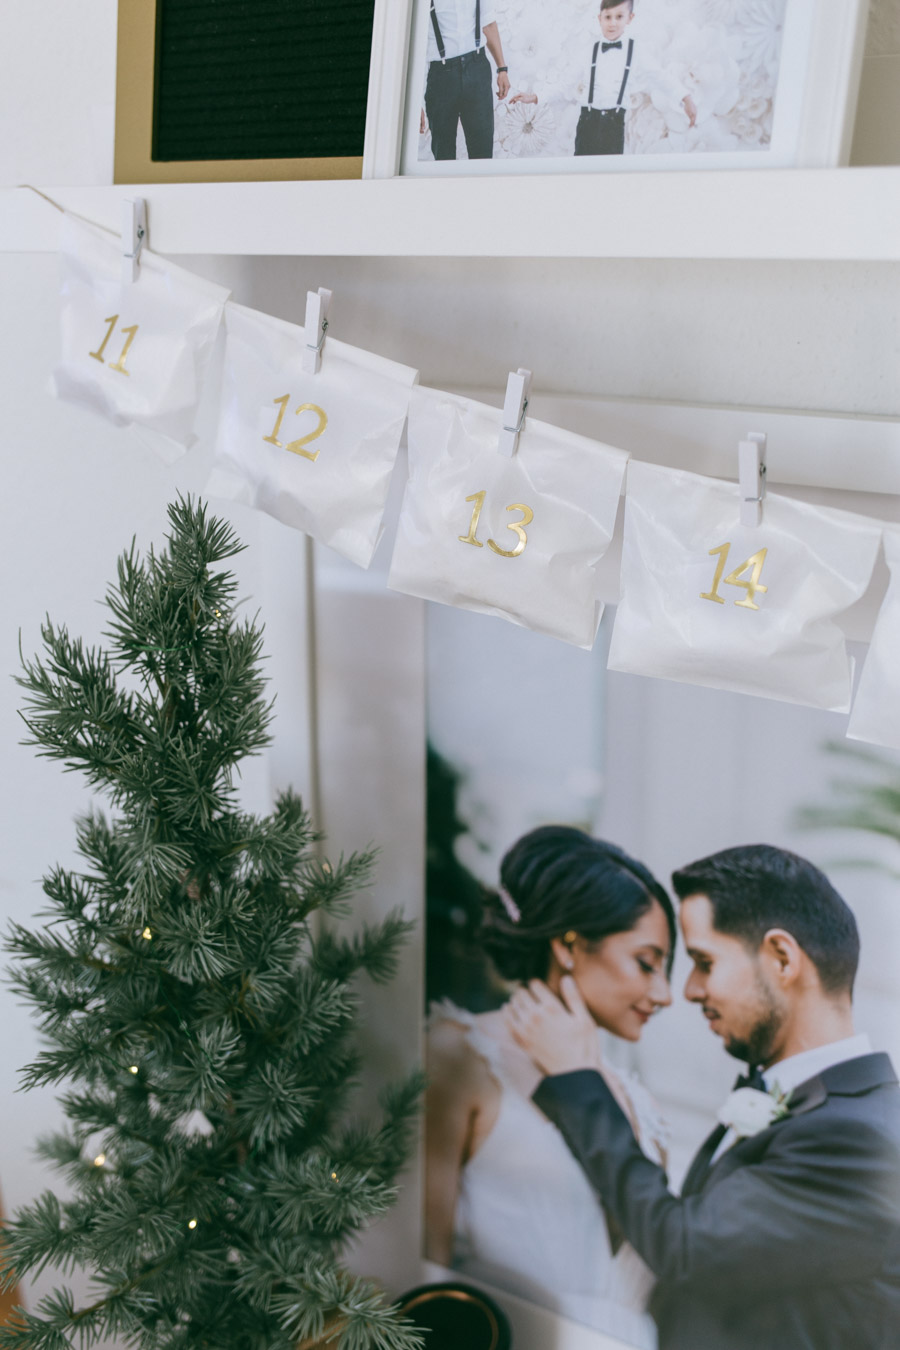 Minimalist advent calendar idea under $20